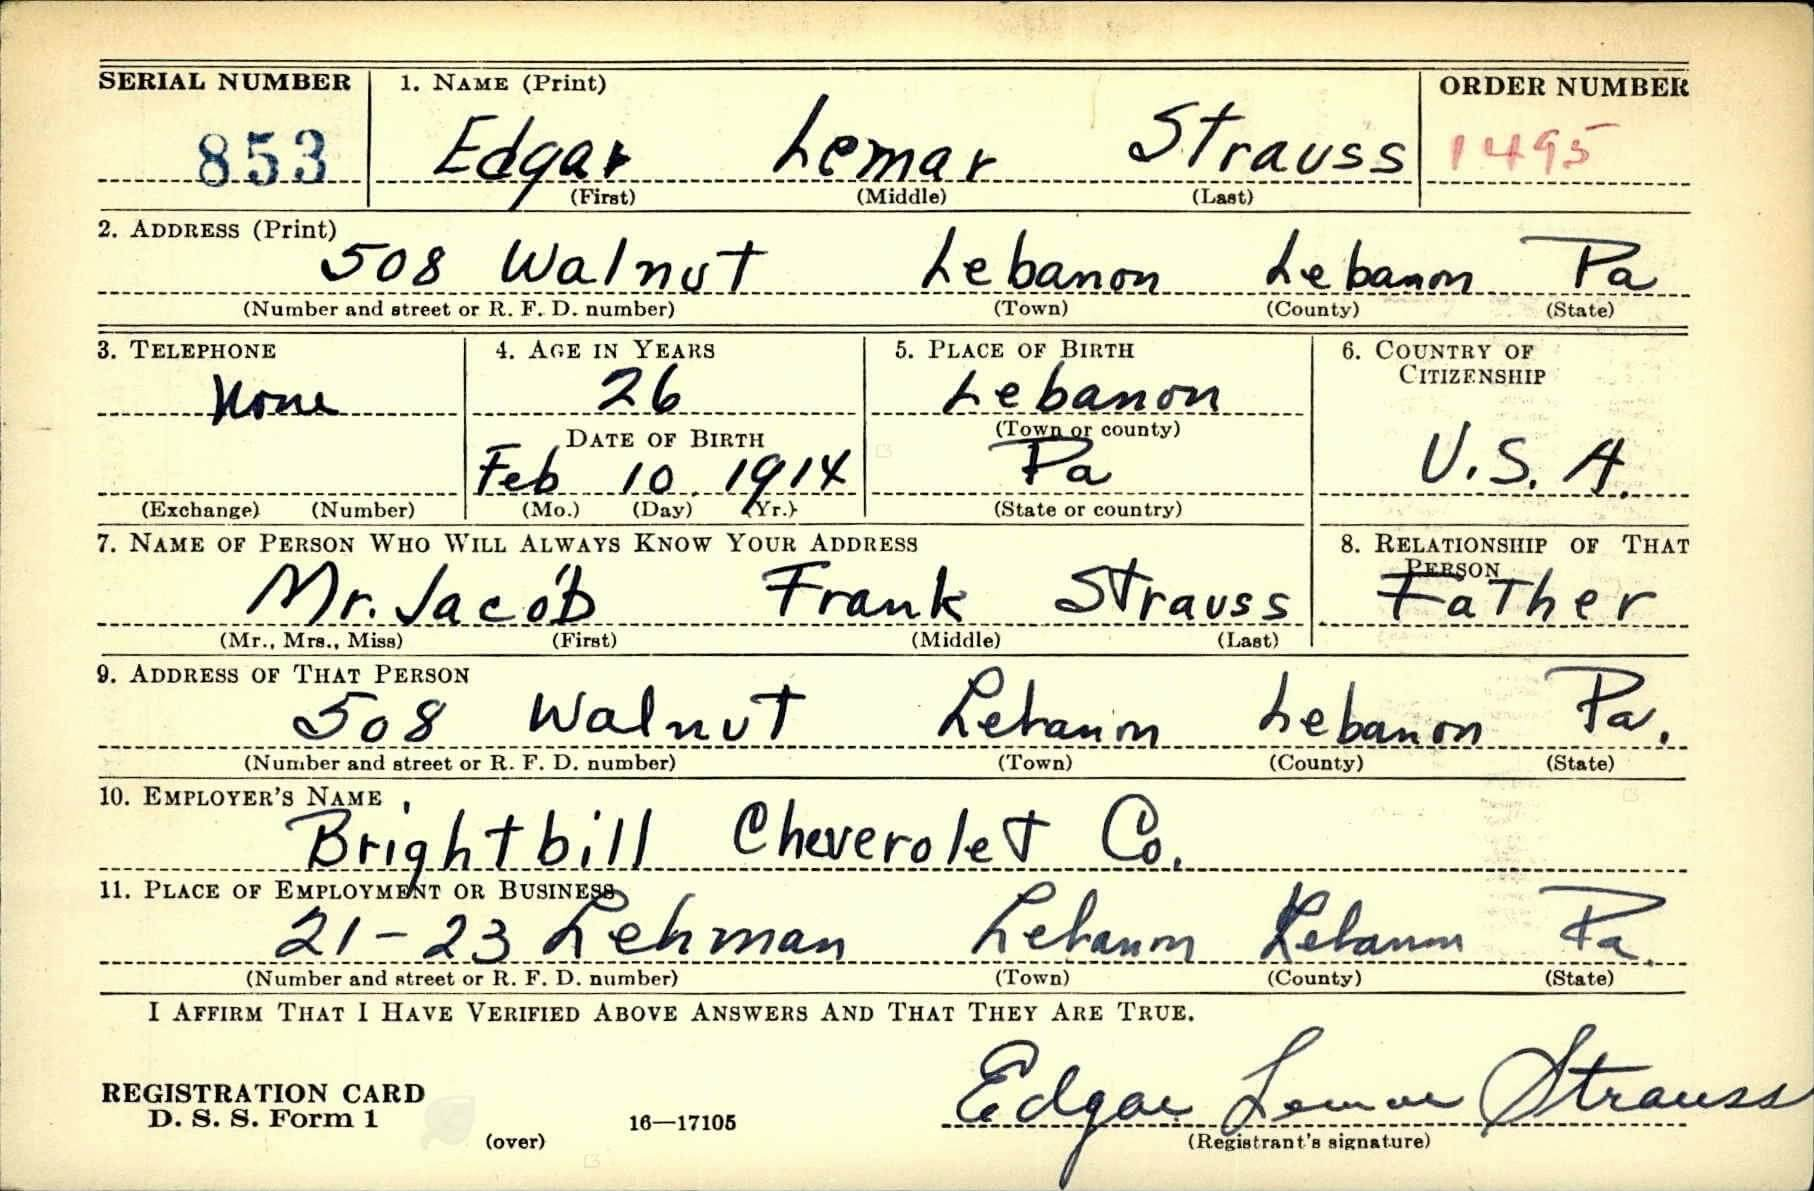 Edgar L. Strauss-WWII Draft Card